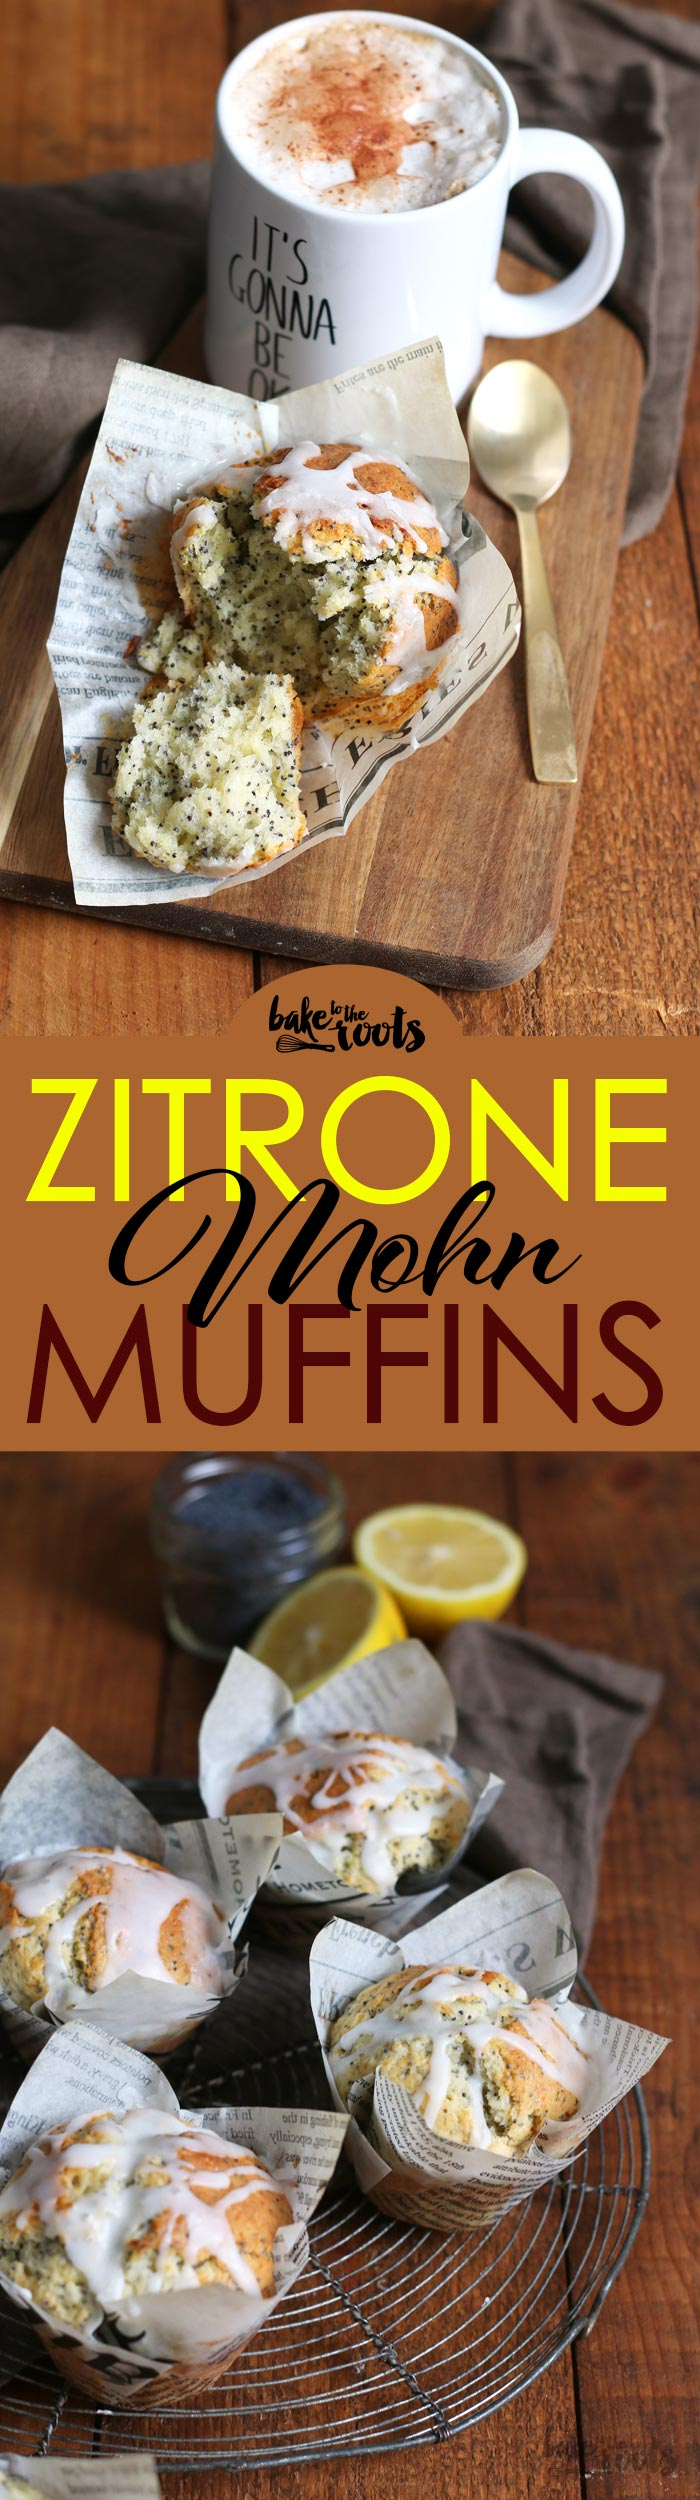 Leckere Zitrone Mohn Muffins, wie man sie aus dem Coffee Shop kennt | Bake to the roots